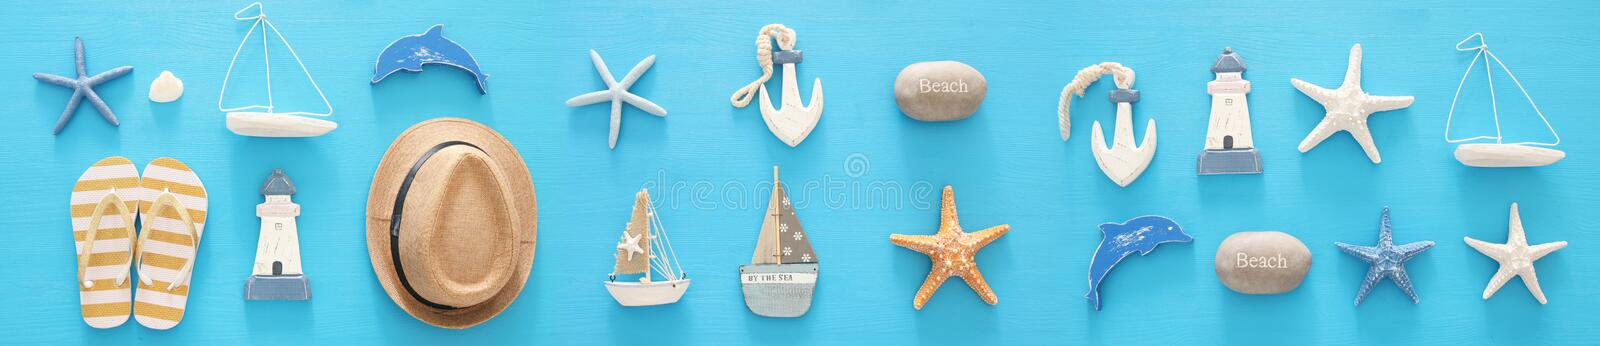 Nautical, vacation and travel banner with sea life style objects. Top view. Nautical, vacation and travel banner with sea life style objects. Top view royalty free stock photography